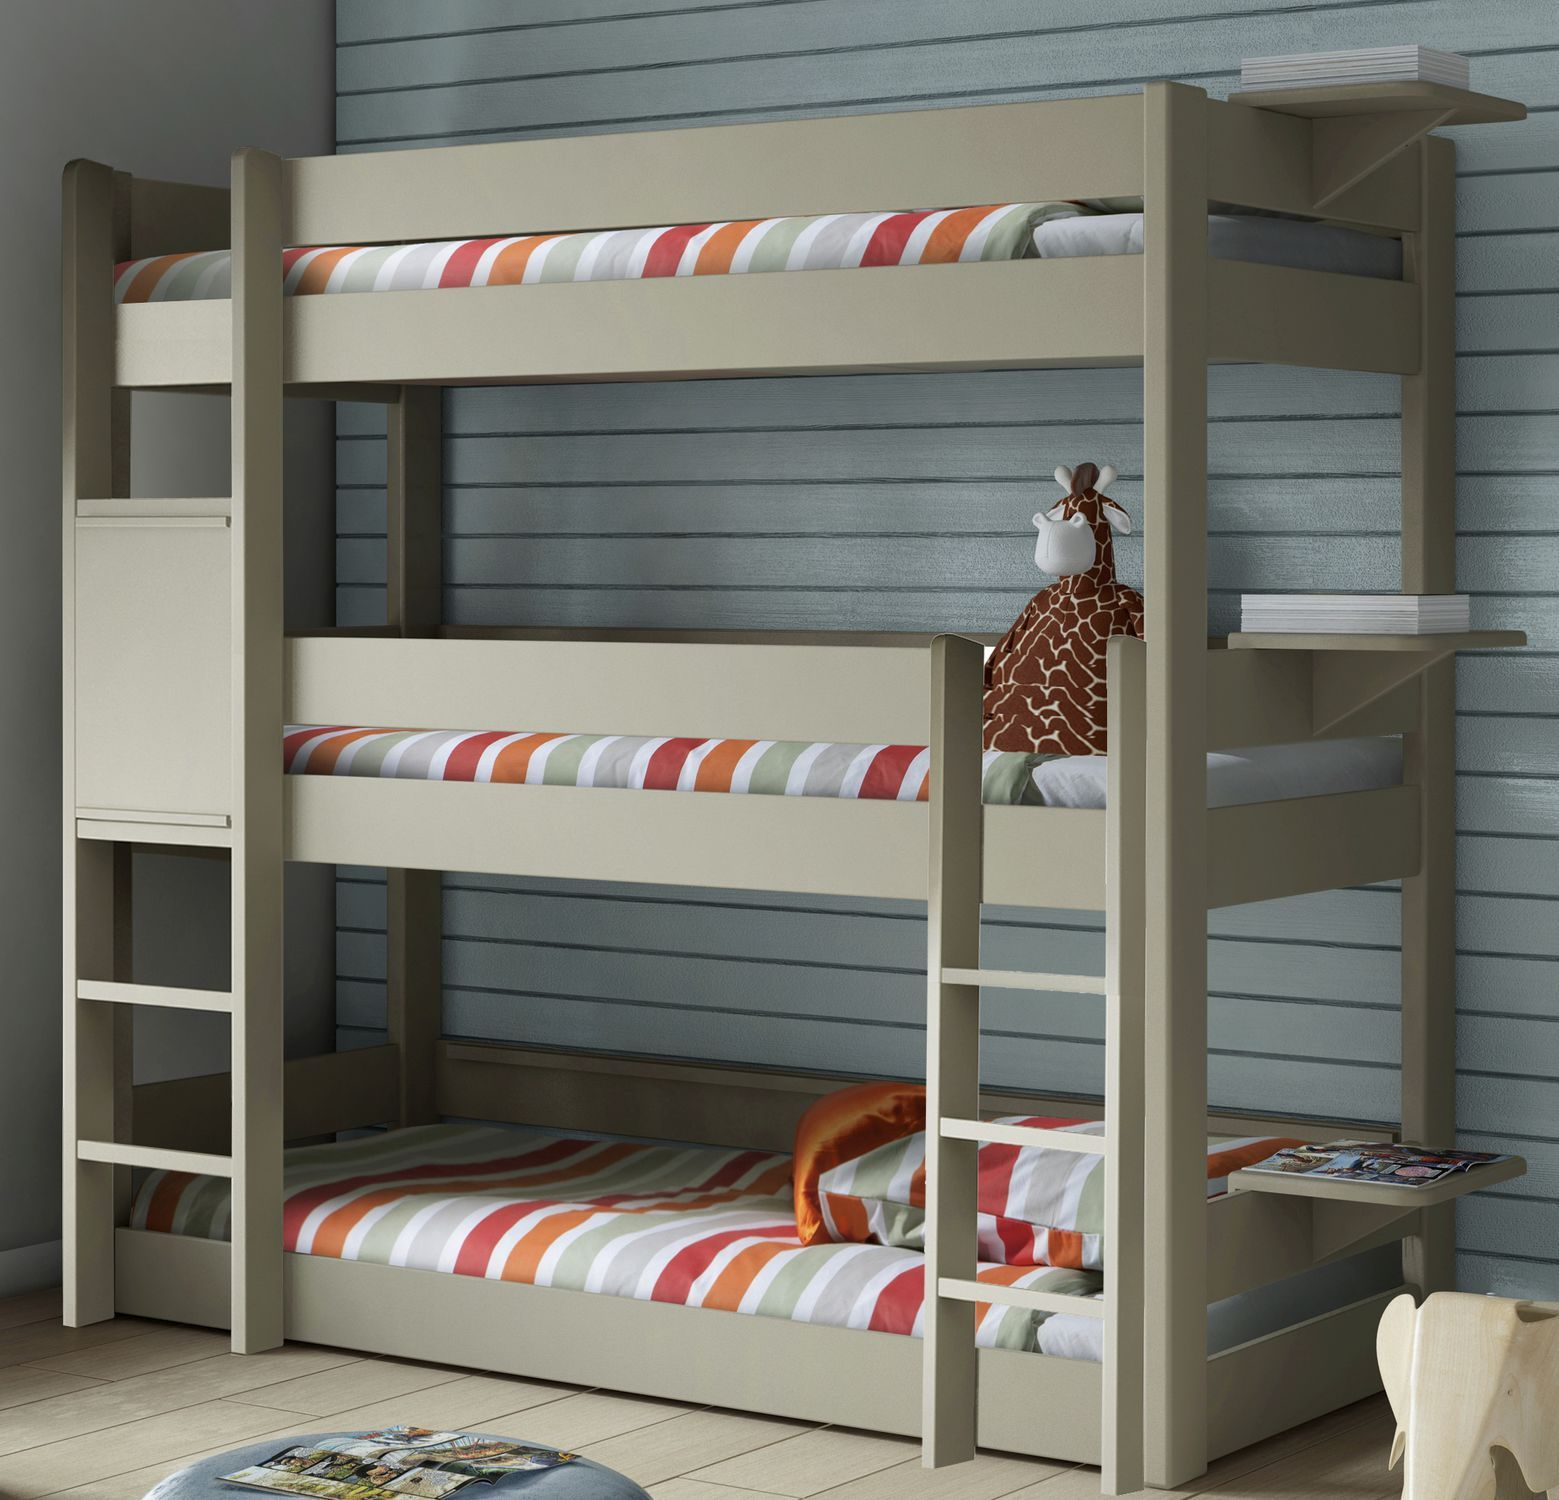 Single bed / triple bunk / contemporary / child's